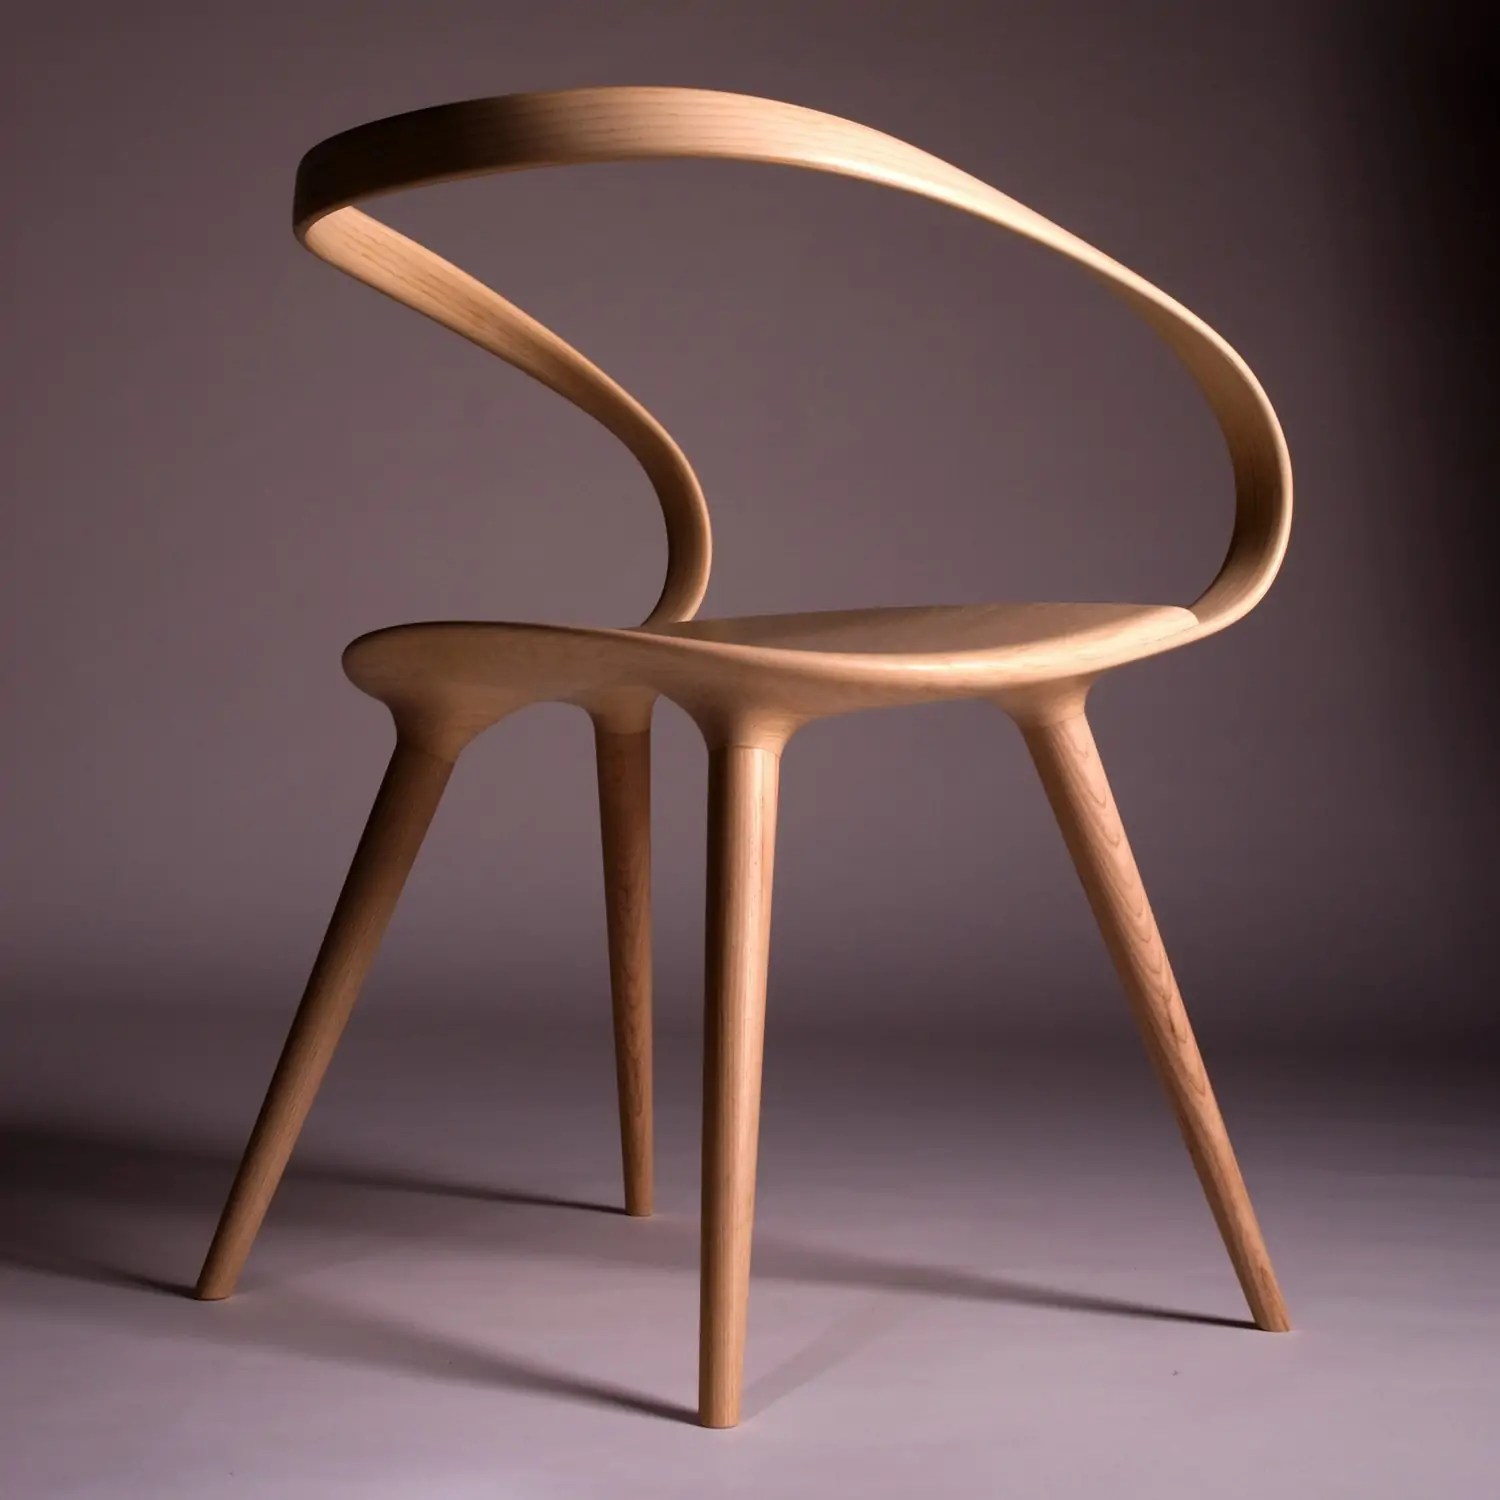 This Insane Bent Plywood Chair is Inspired by Modern